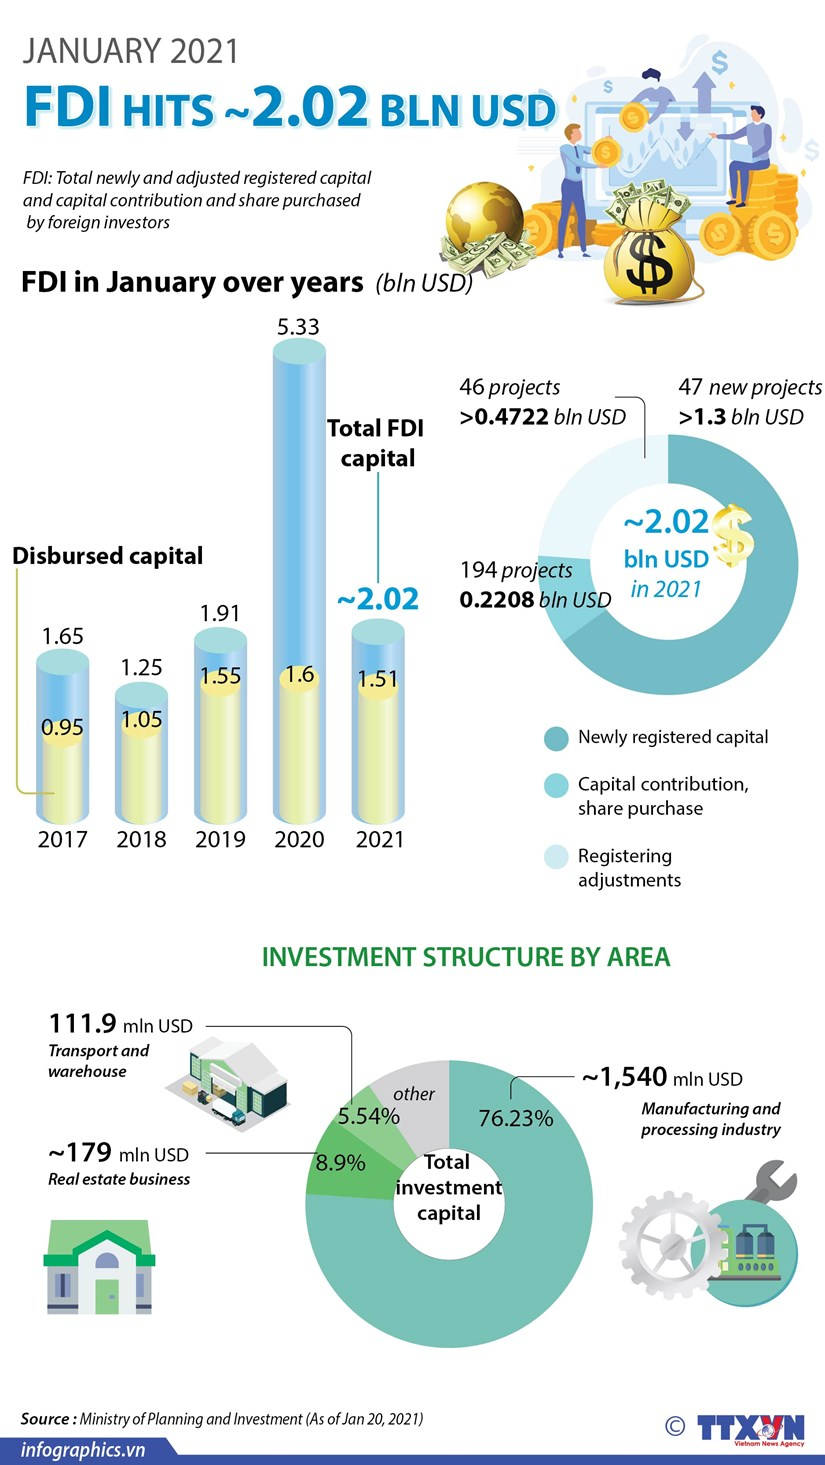 FDI hits 2.02 bln USD in January hinh anh 1